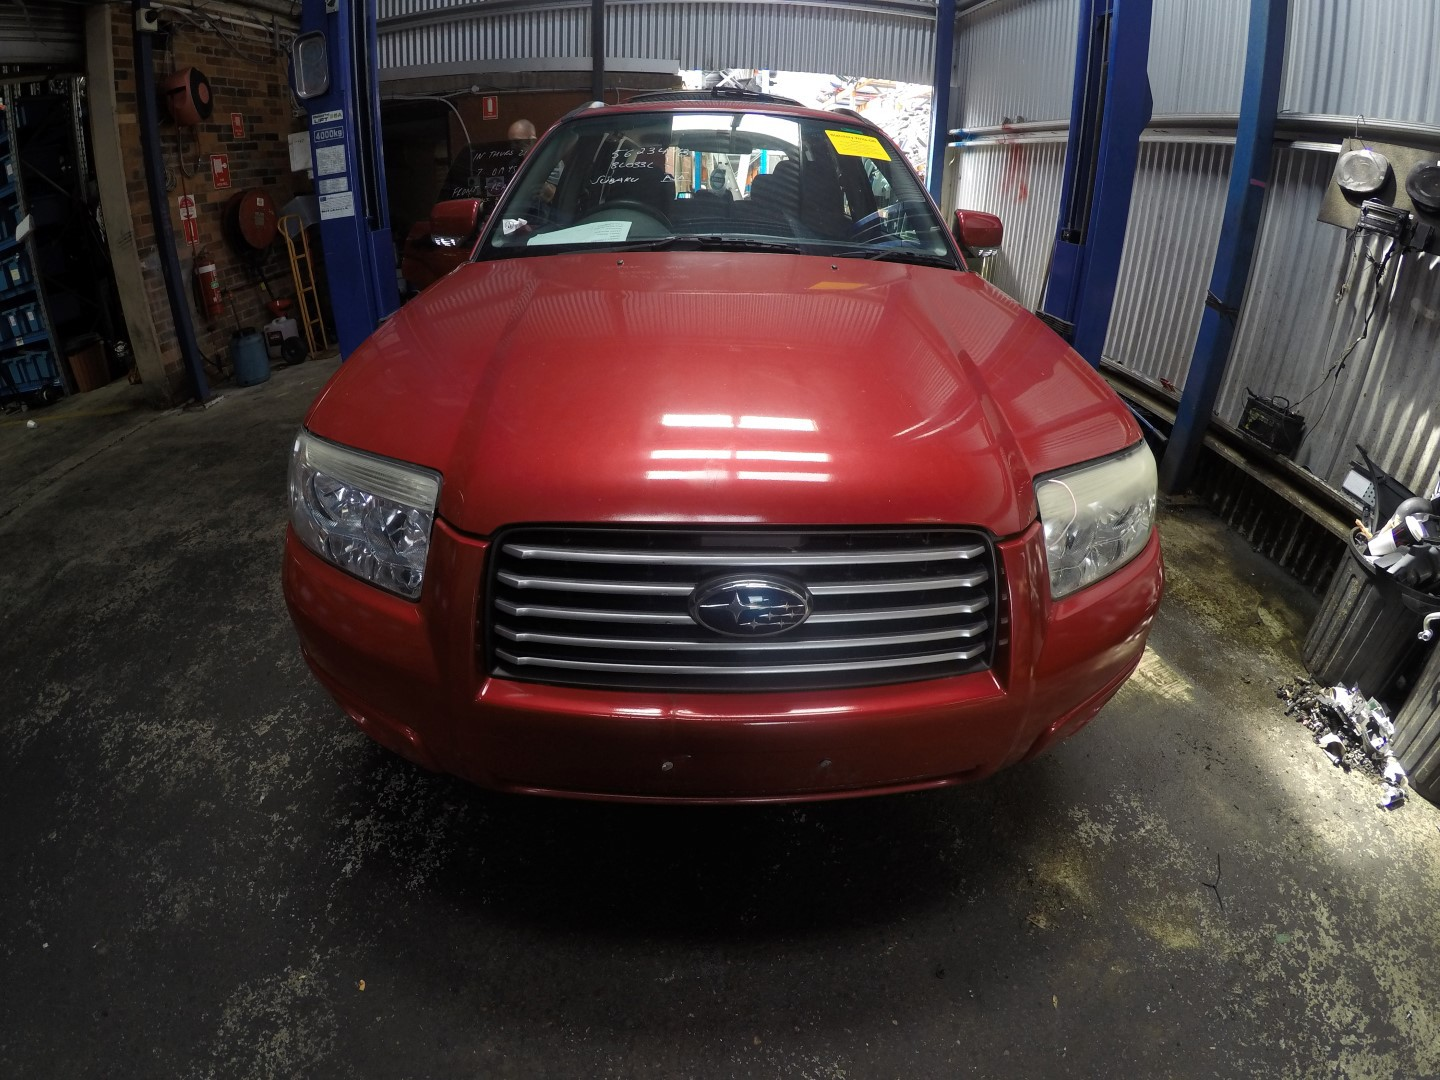 Forester Wrecking 2006 NA EJ25 Engine Gearbox Parts Spare